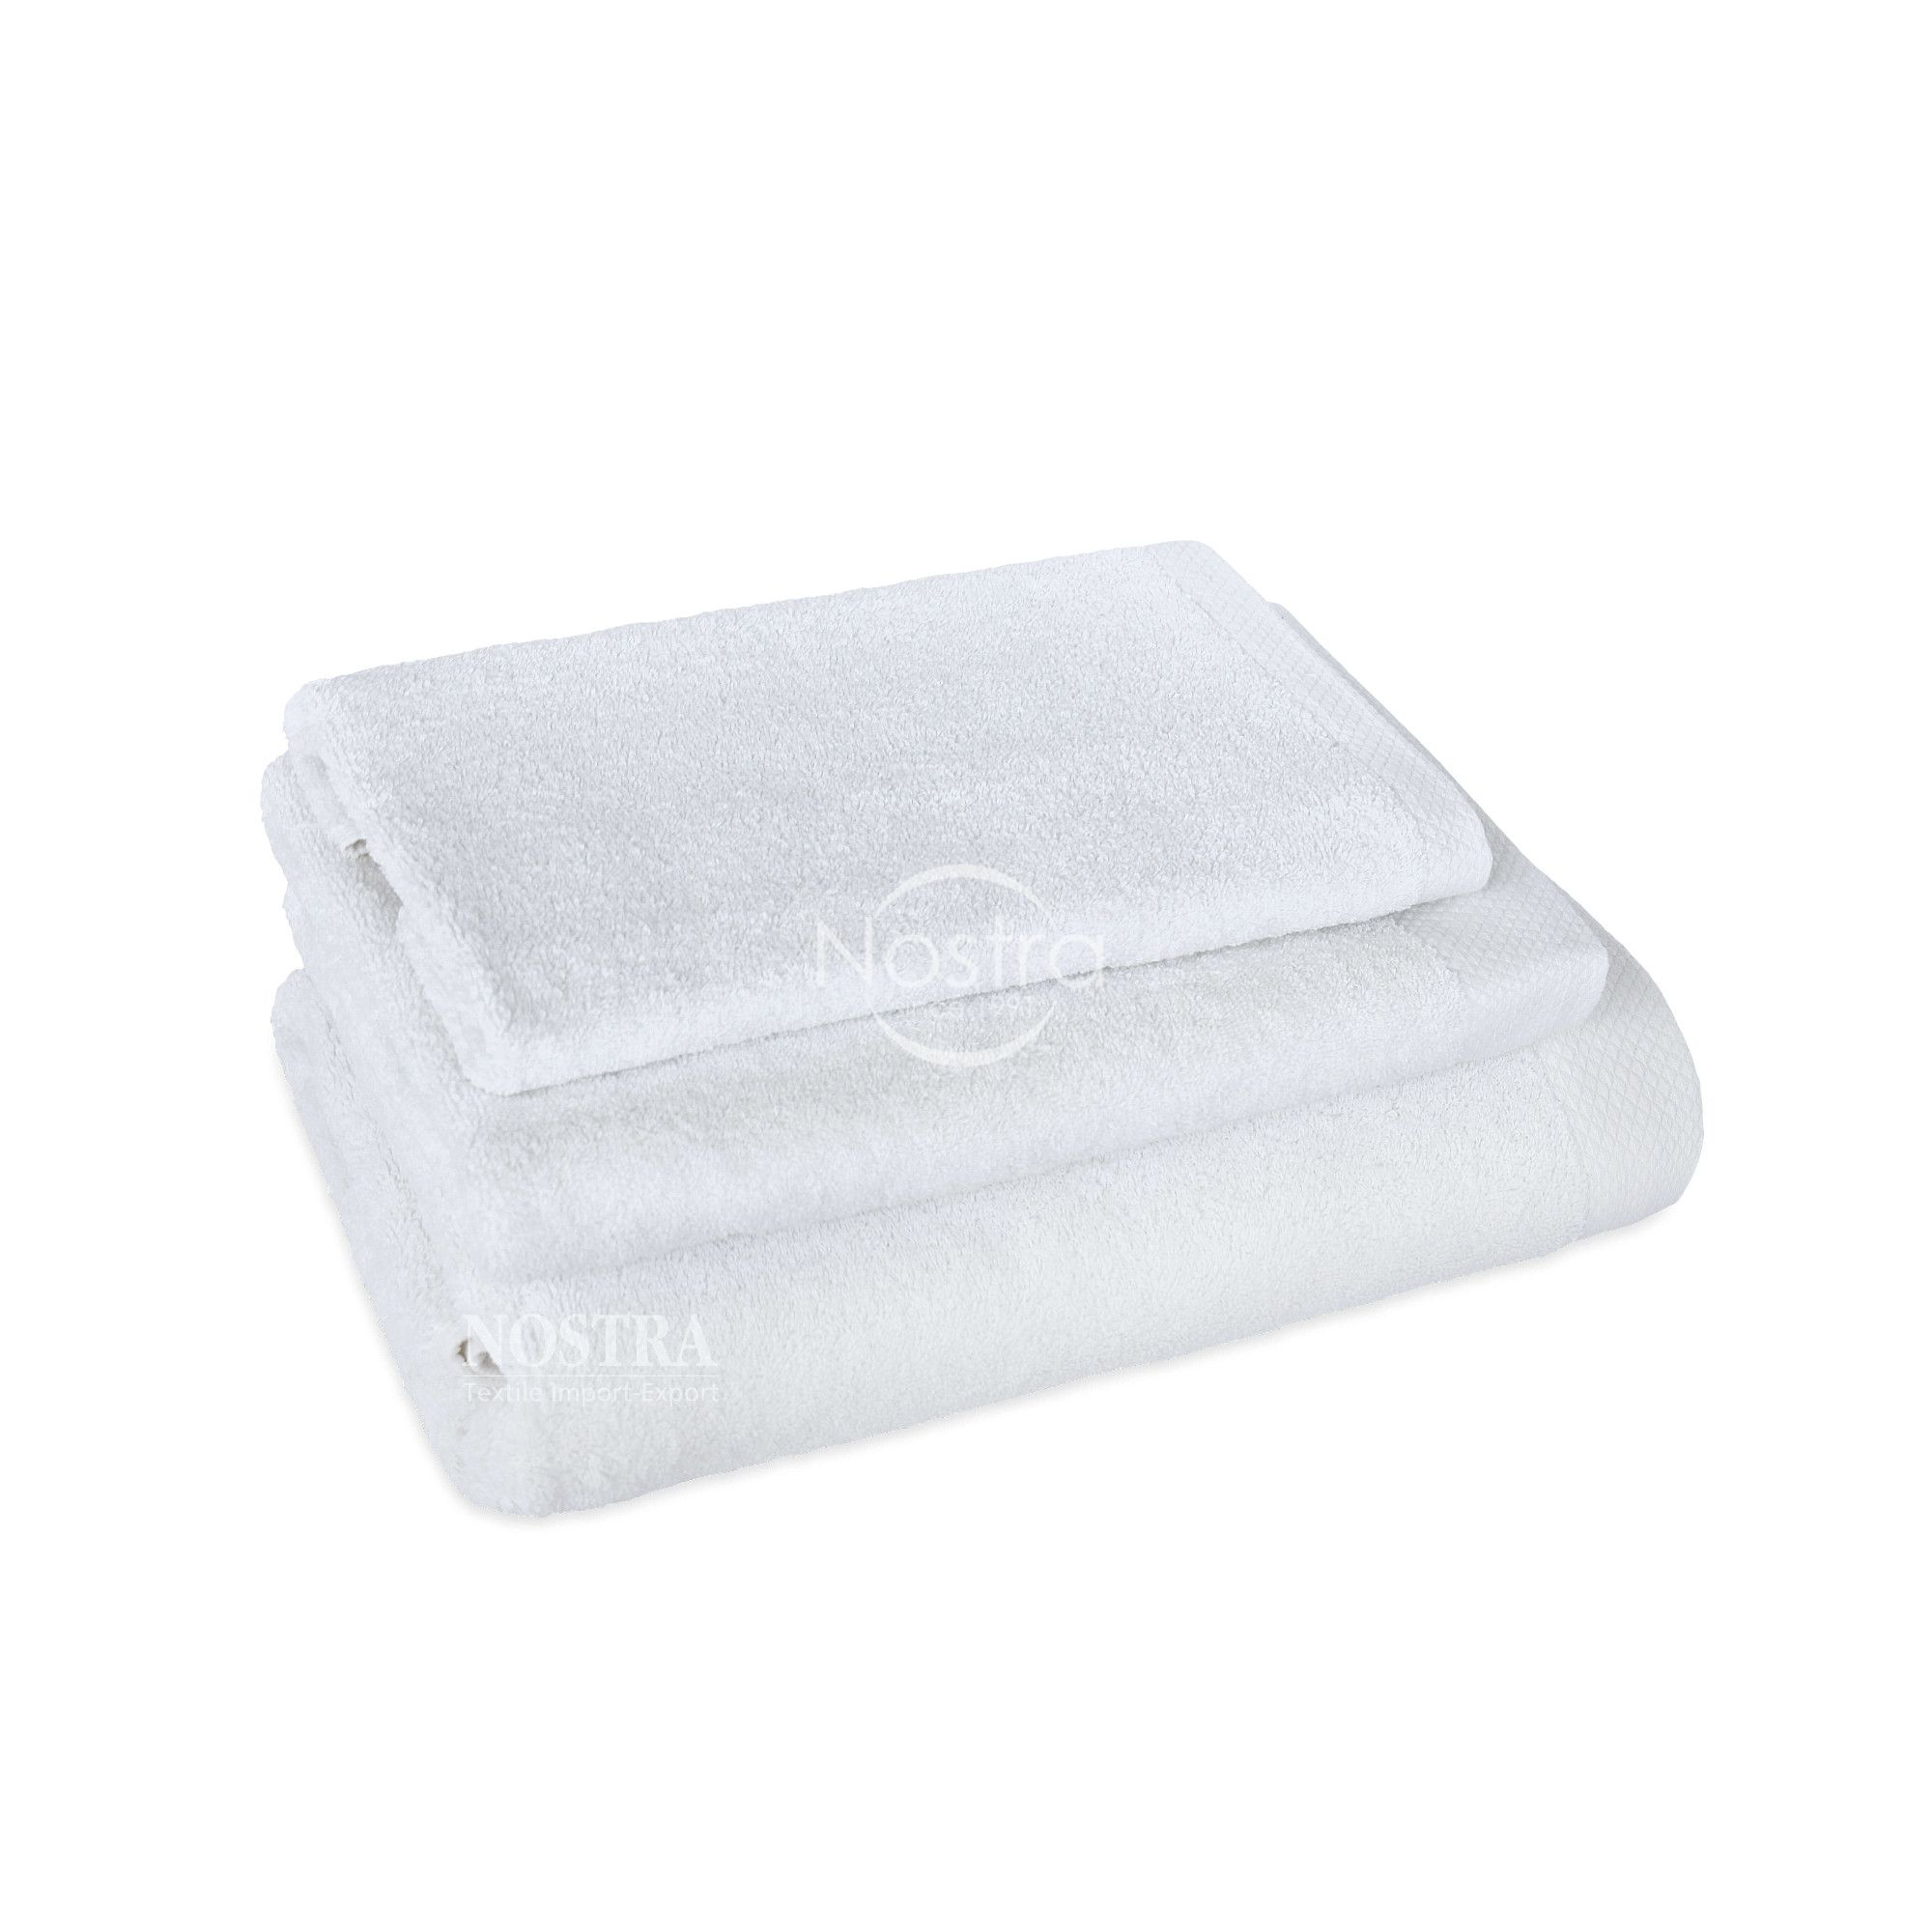 3 pieces towel set 600H